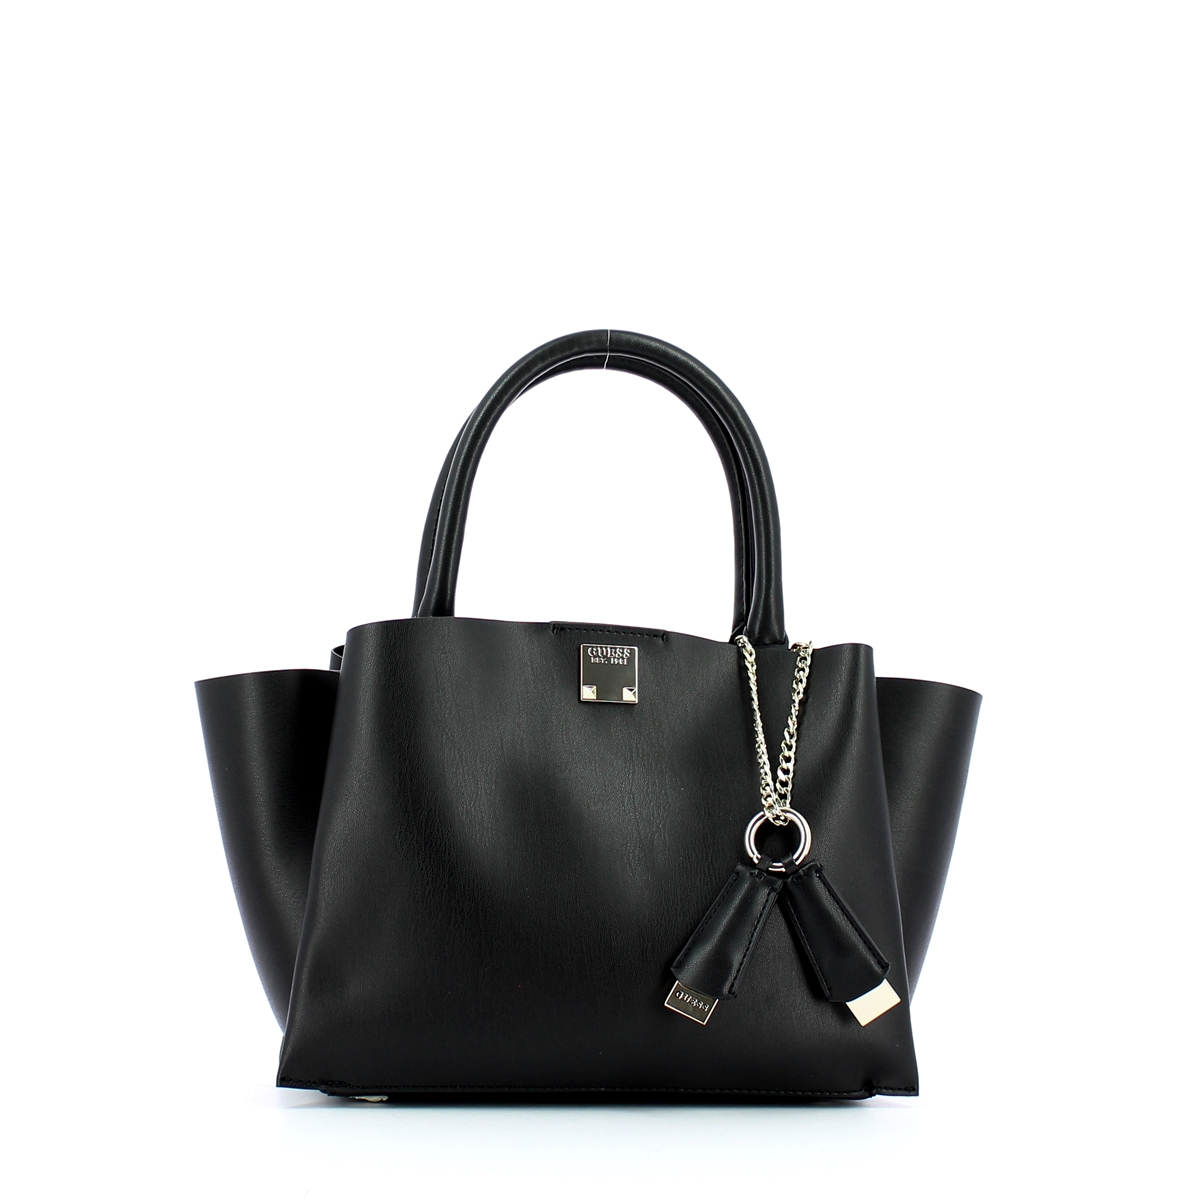 LENIA GIRLFRIEND SATCHEL BLA